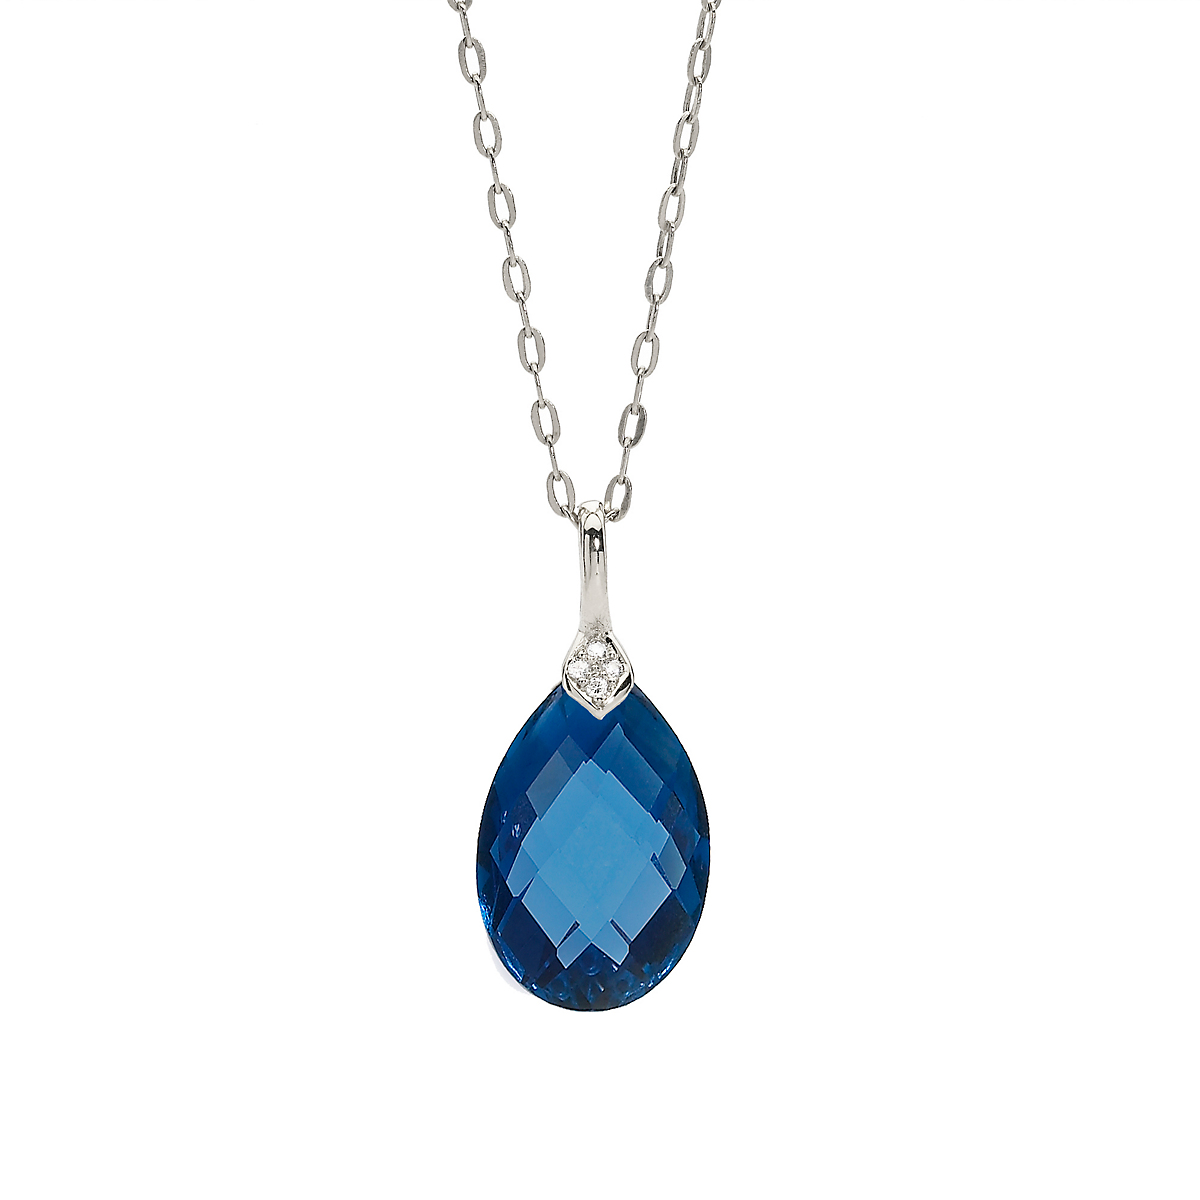 Elizabeth Showers London Blue Sapphire & White Sapphire Eliza Droplet Silver Necklace